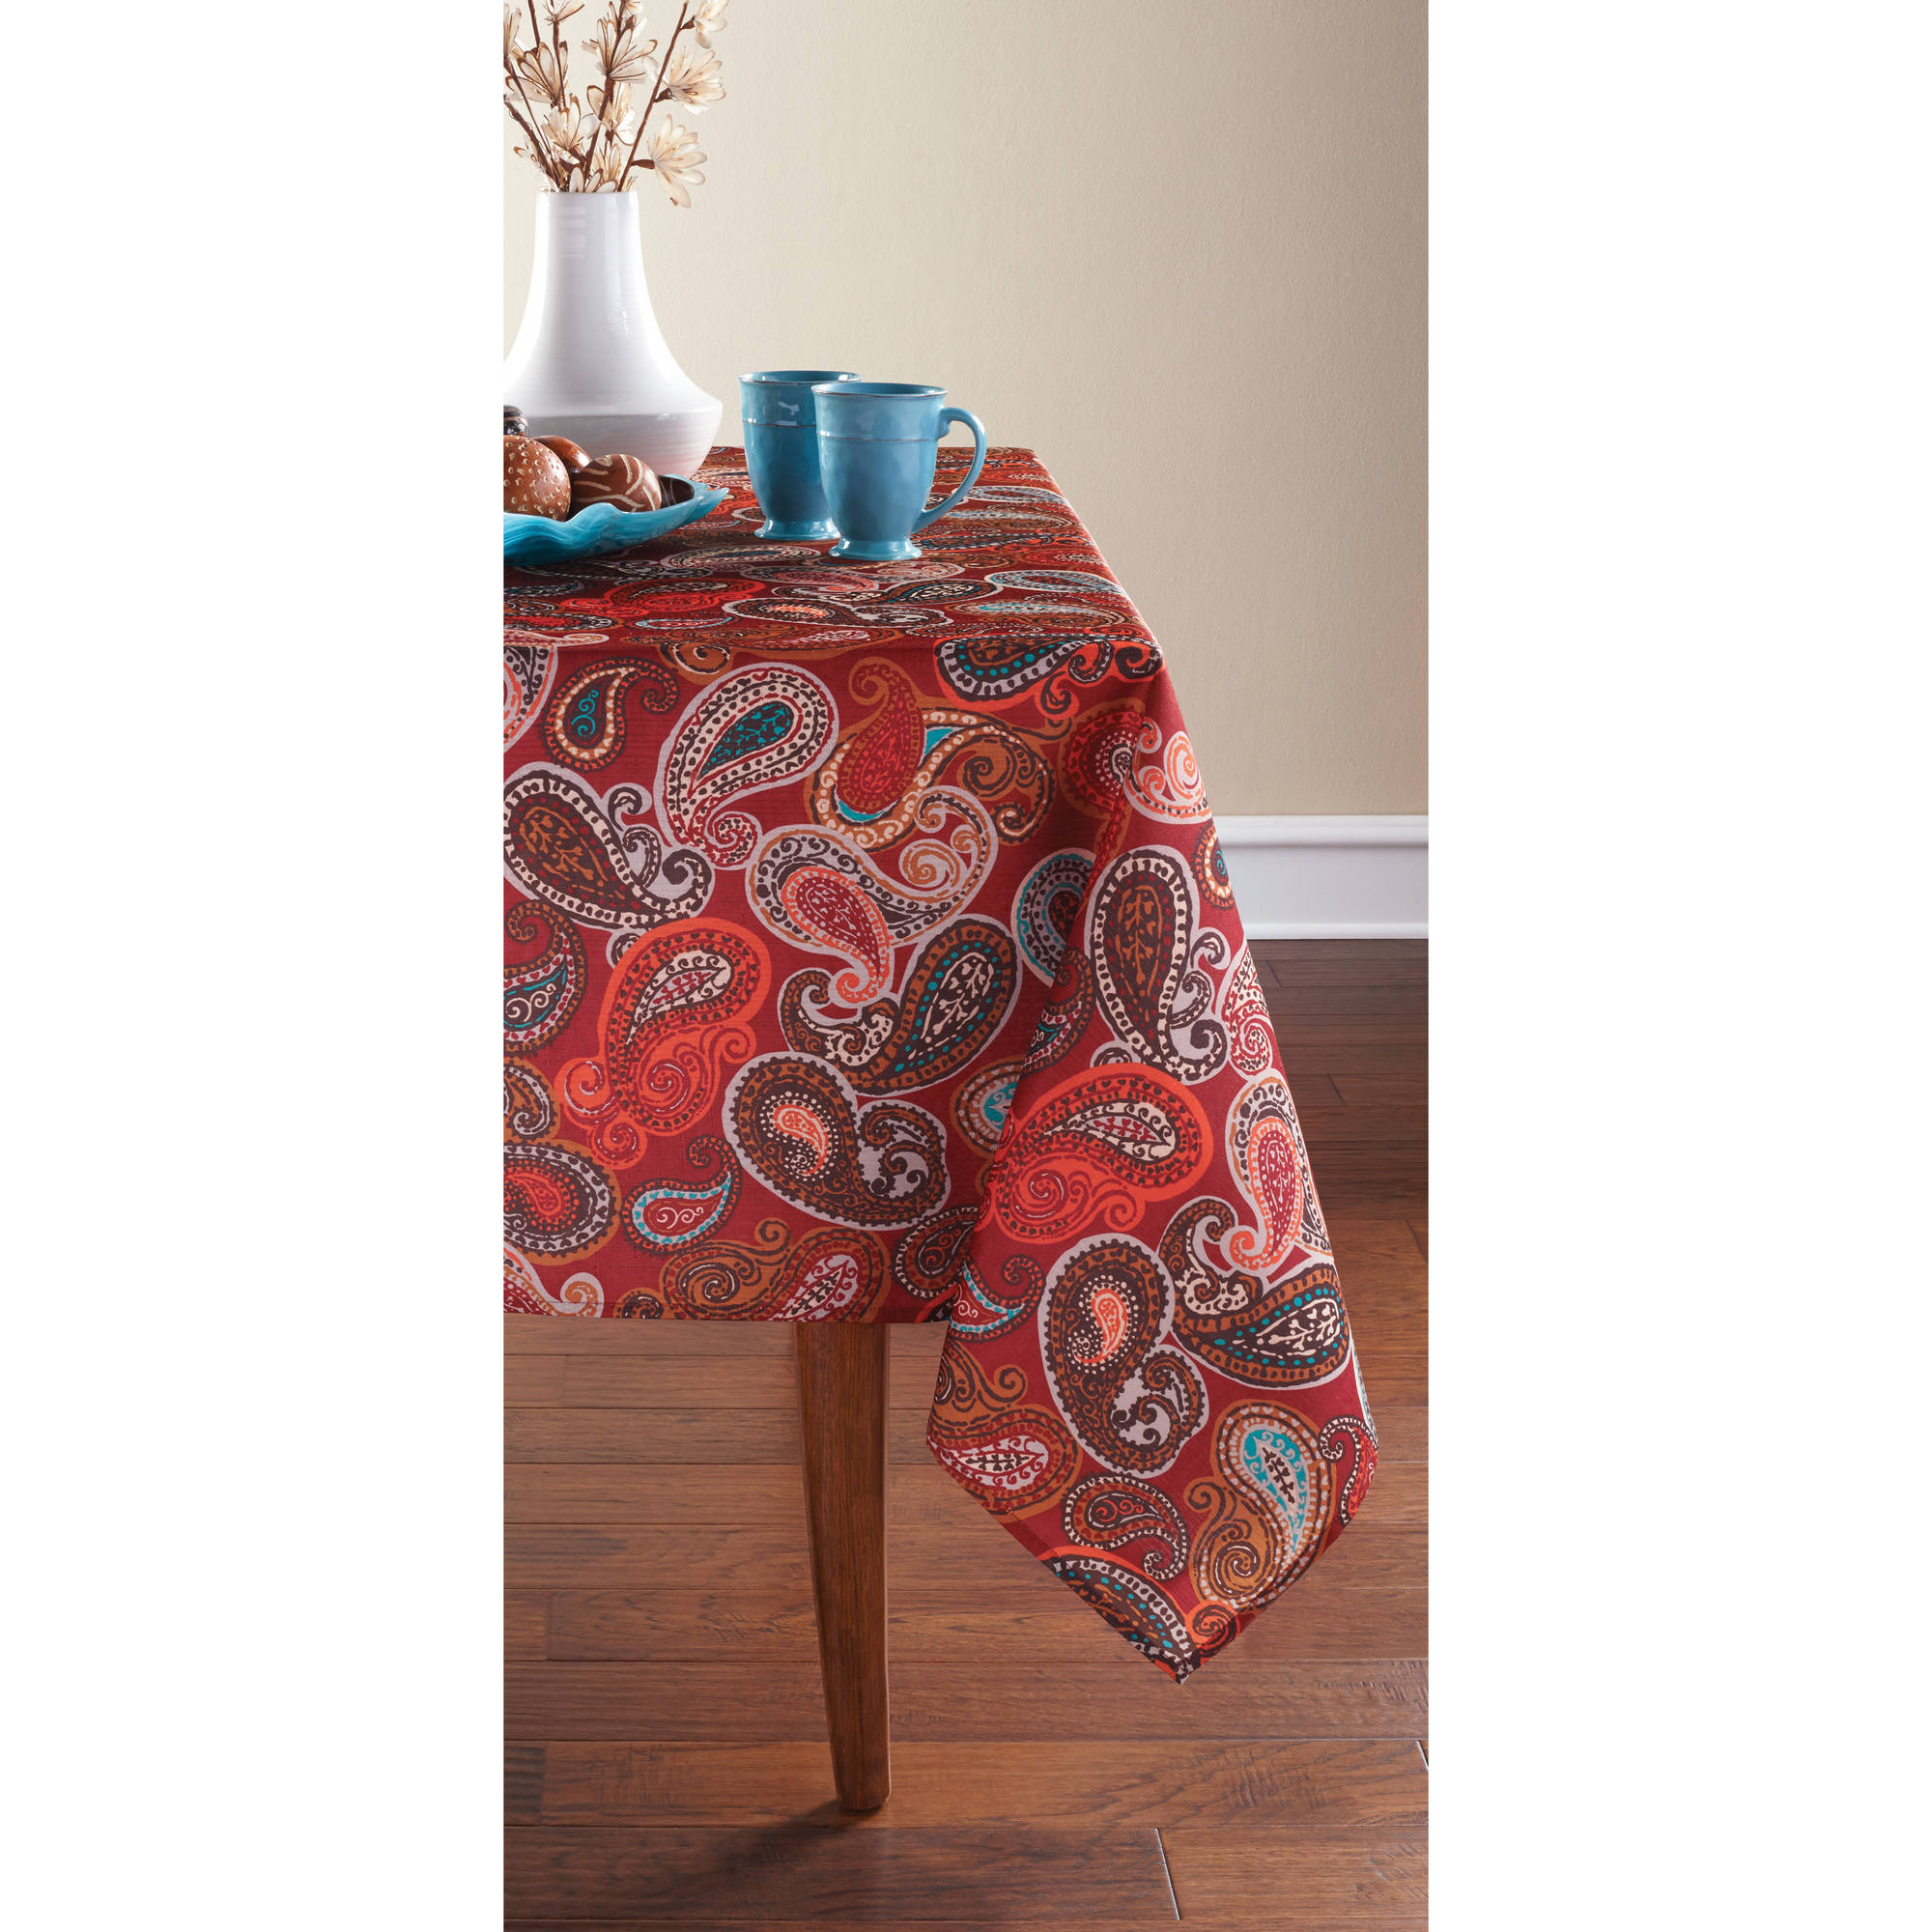 Mainstays Paisley Tablecloth